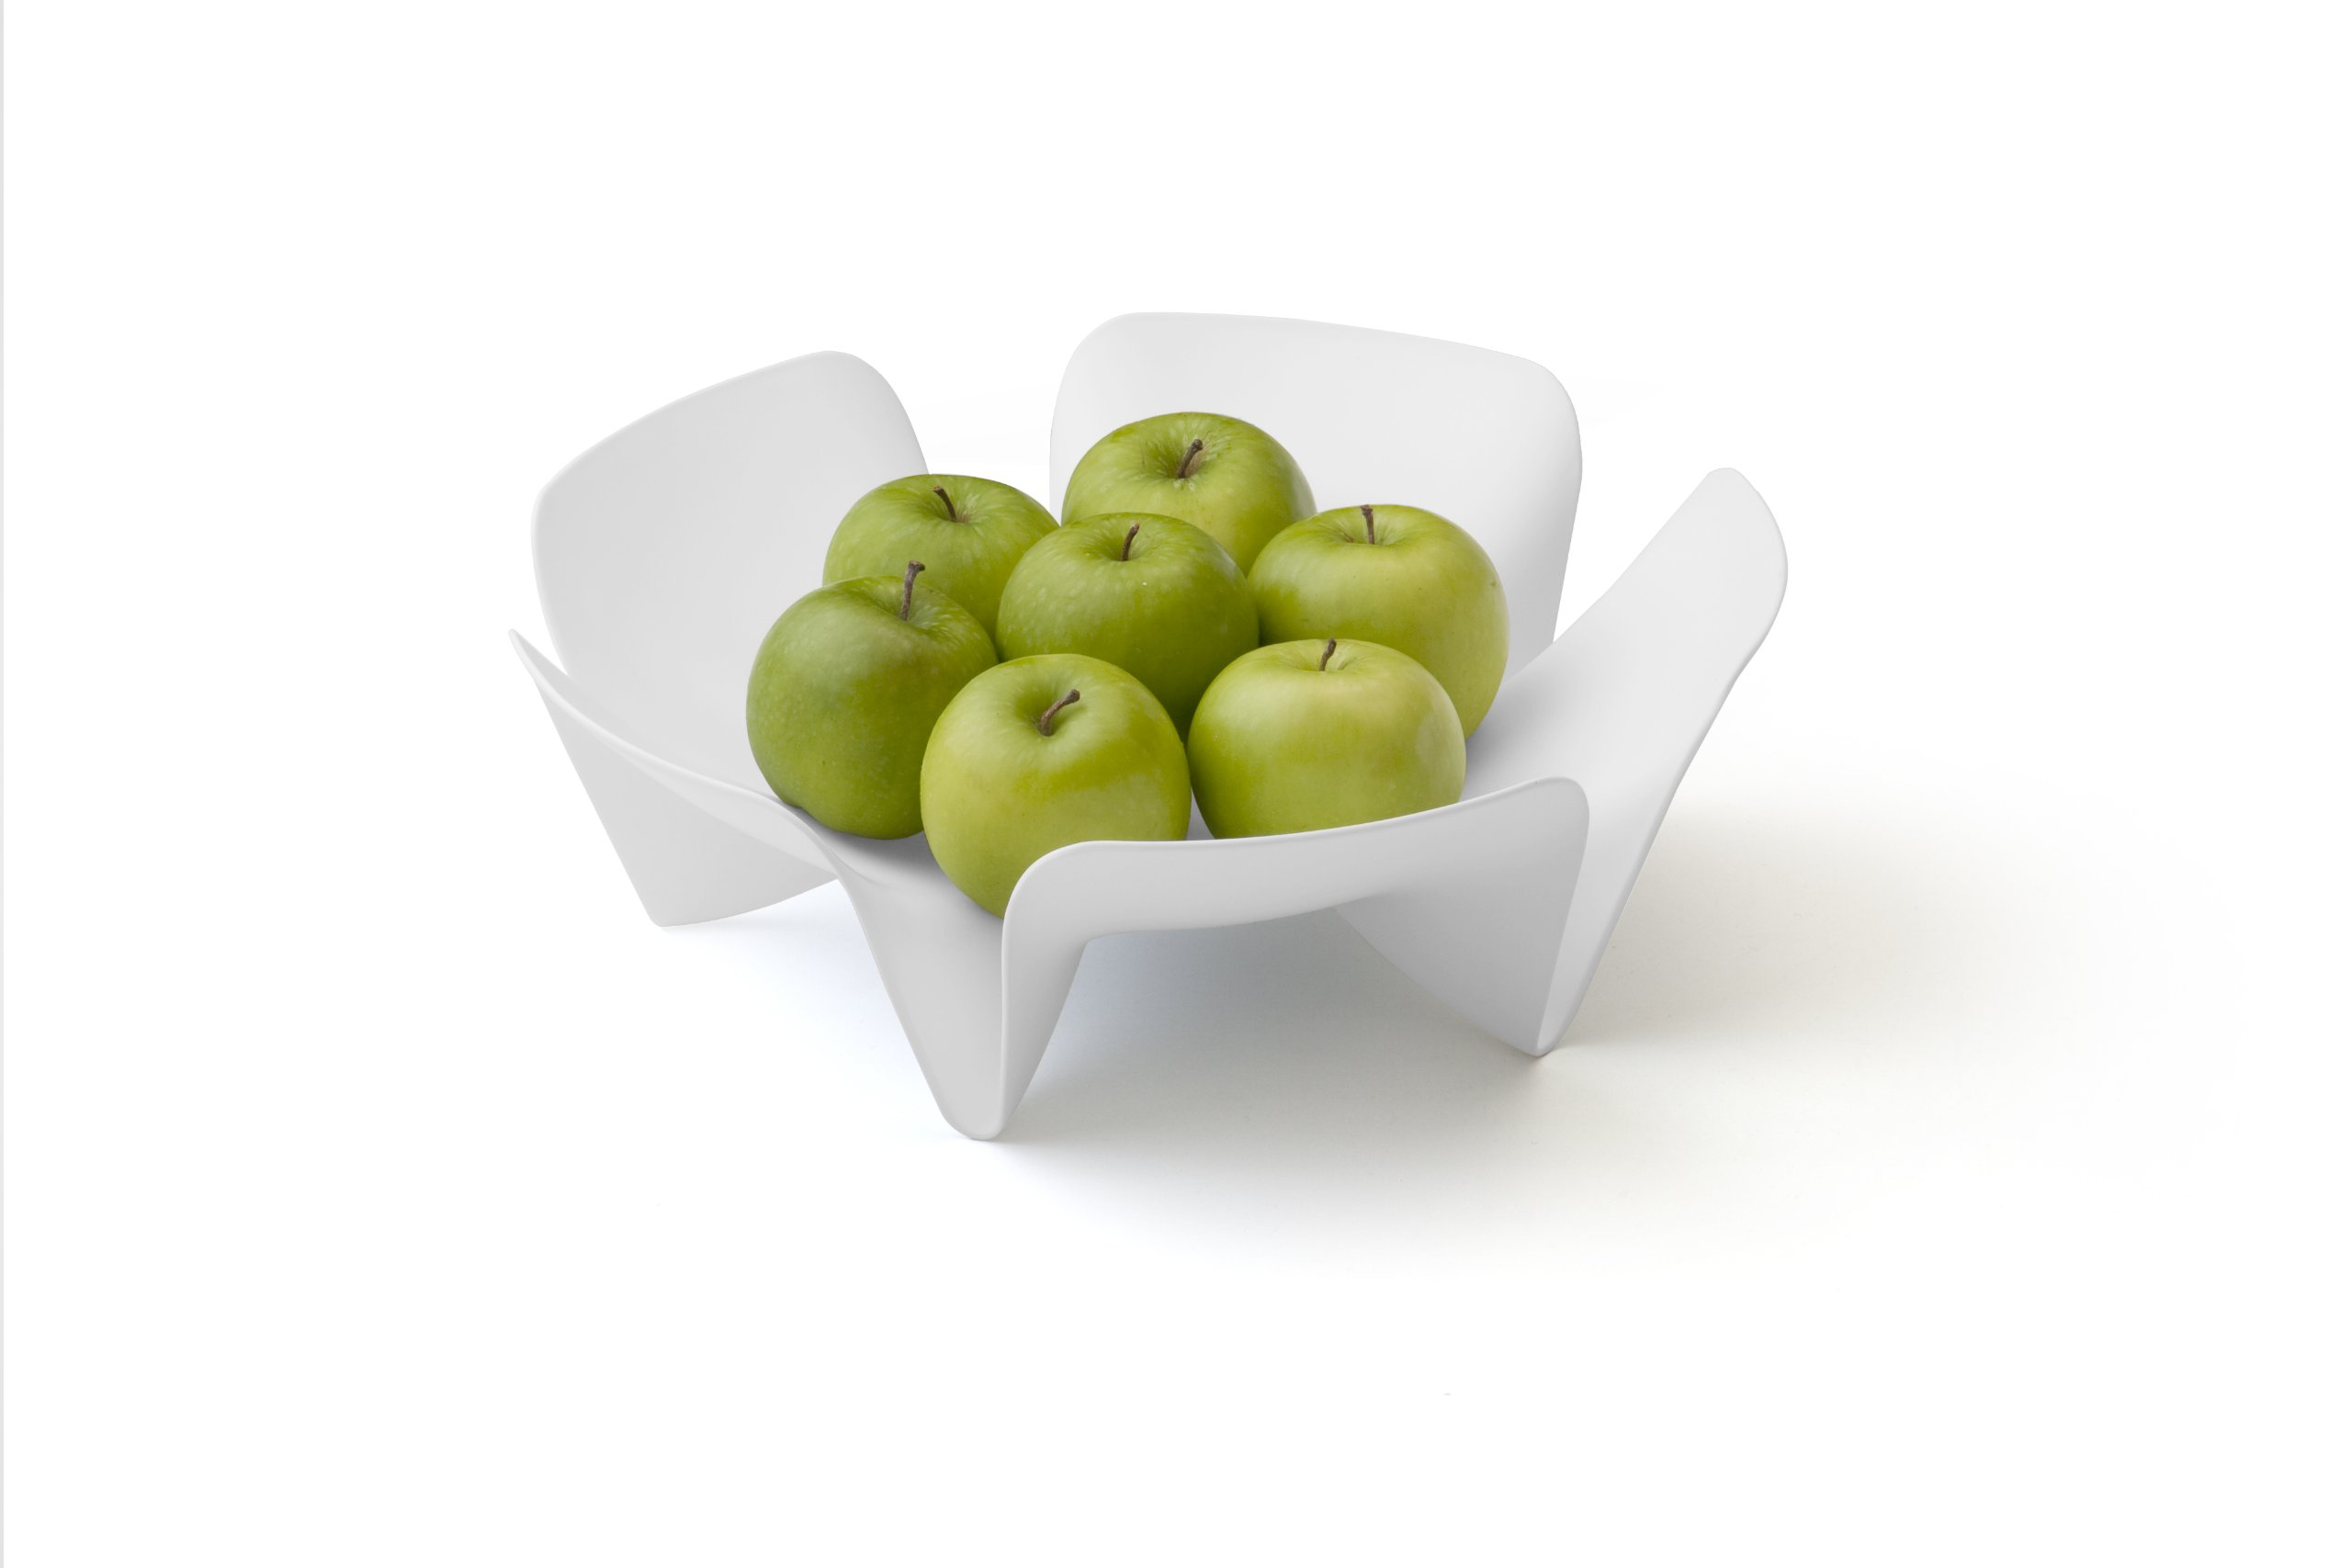 Qualy Flower Fruit Tray Blue by Qualy (Image #4)